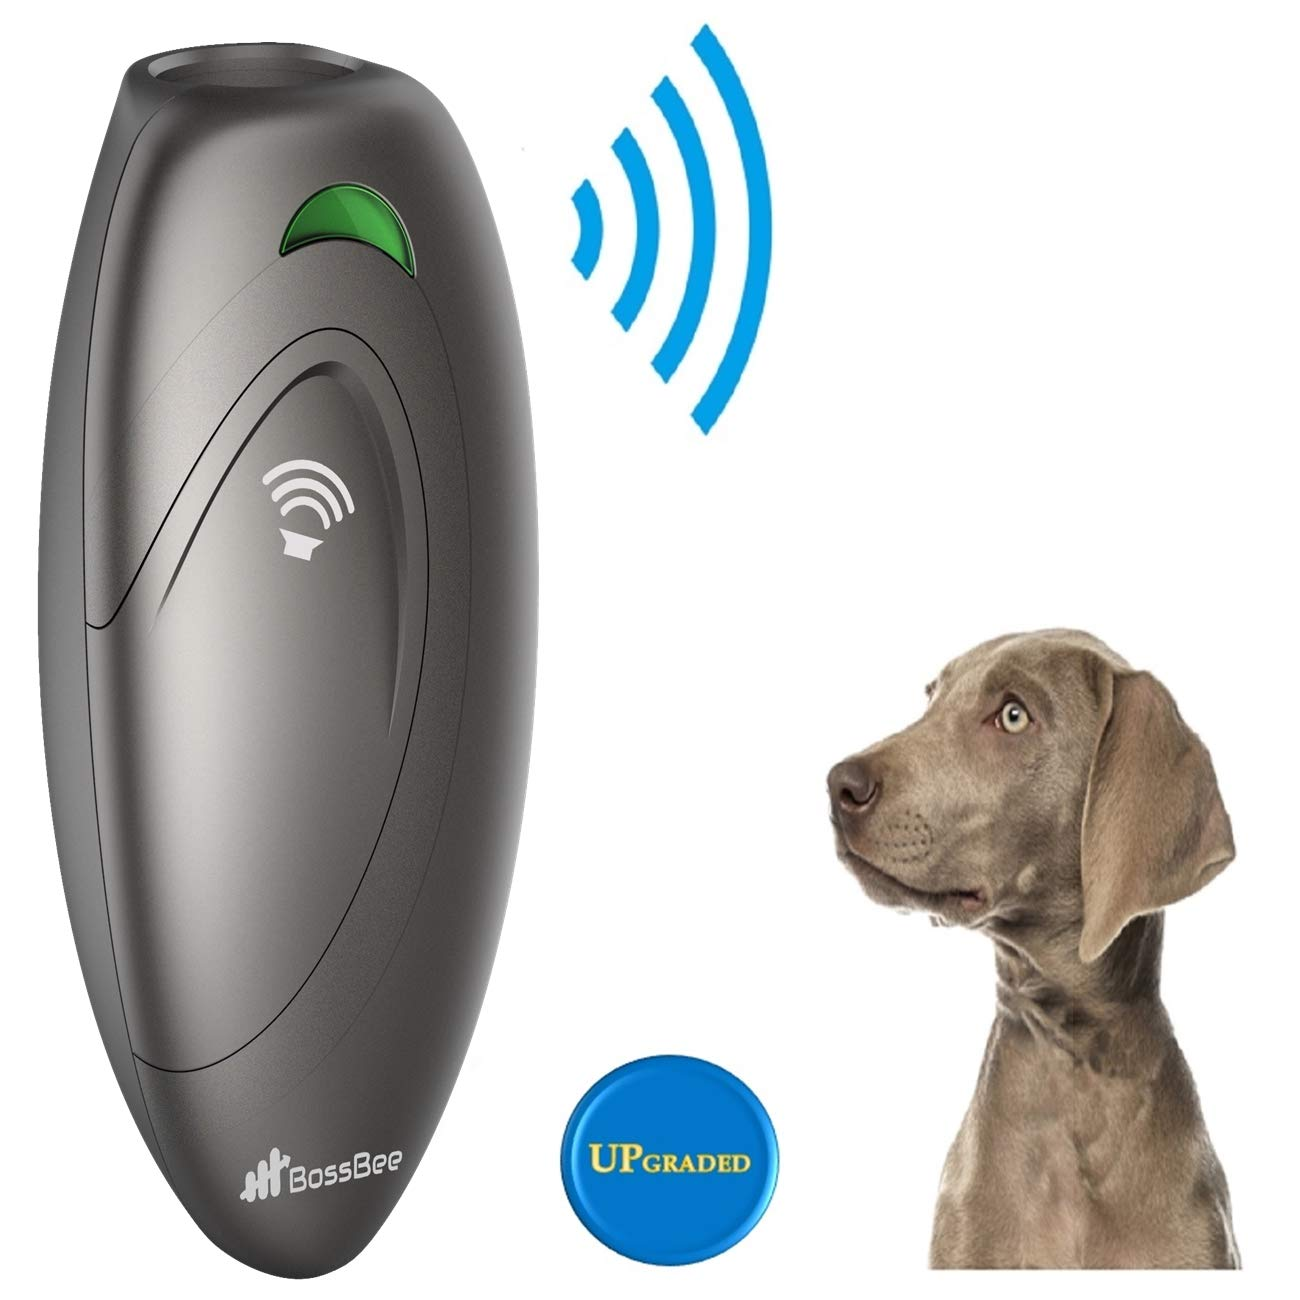 BossBee Ultrasonic barking control, Dog bark control, Bark trainer, Anti  barking device, Handheld ultrasonic dog bark deterrent with Wrist Strap,No